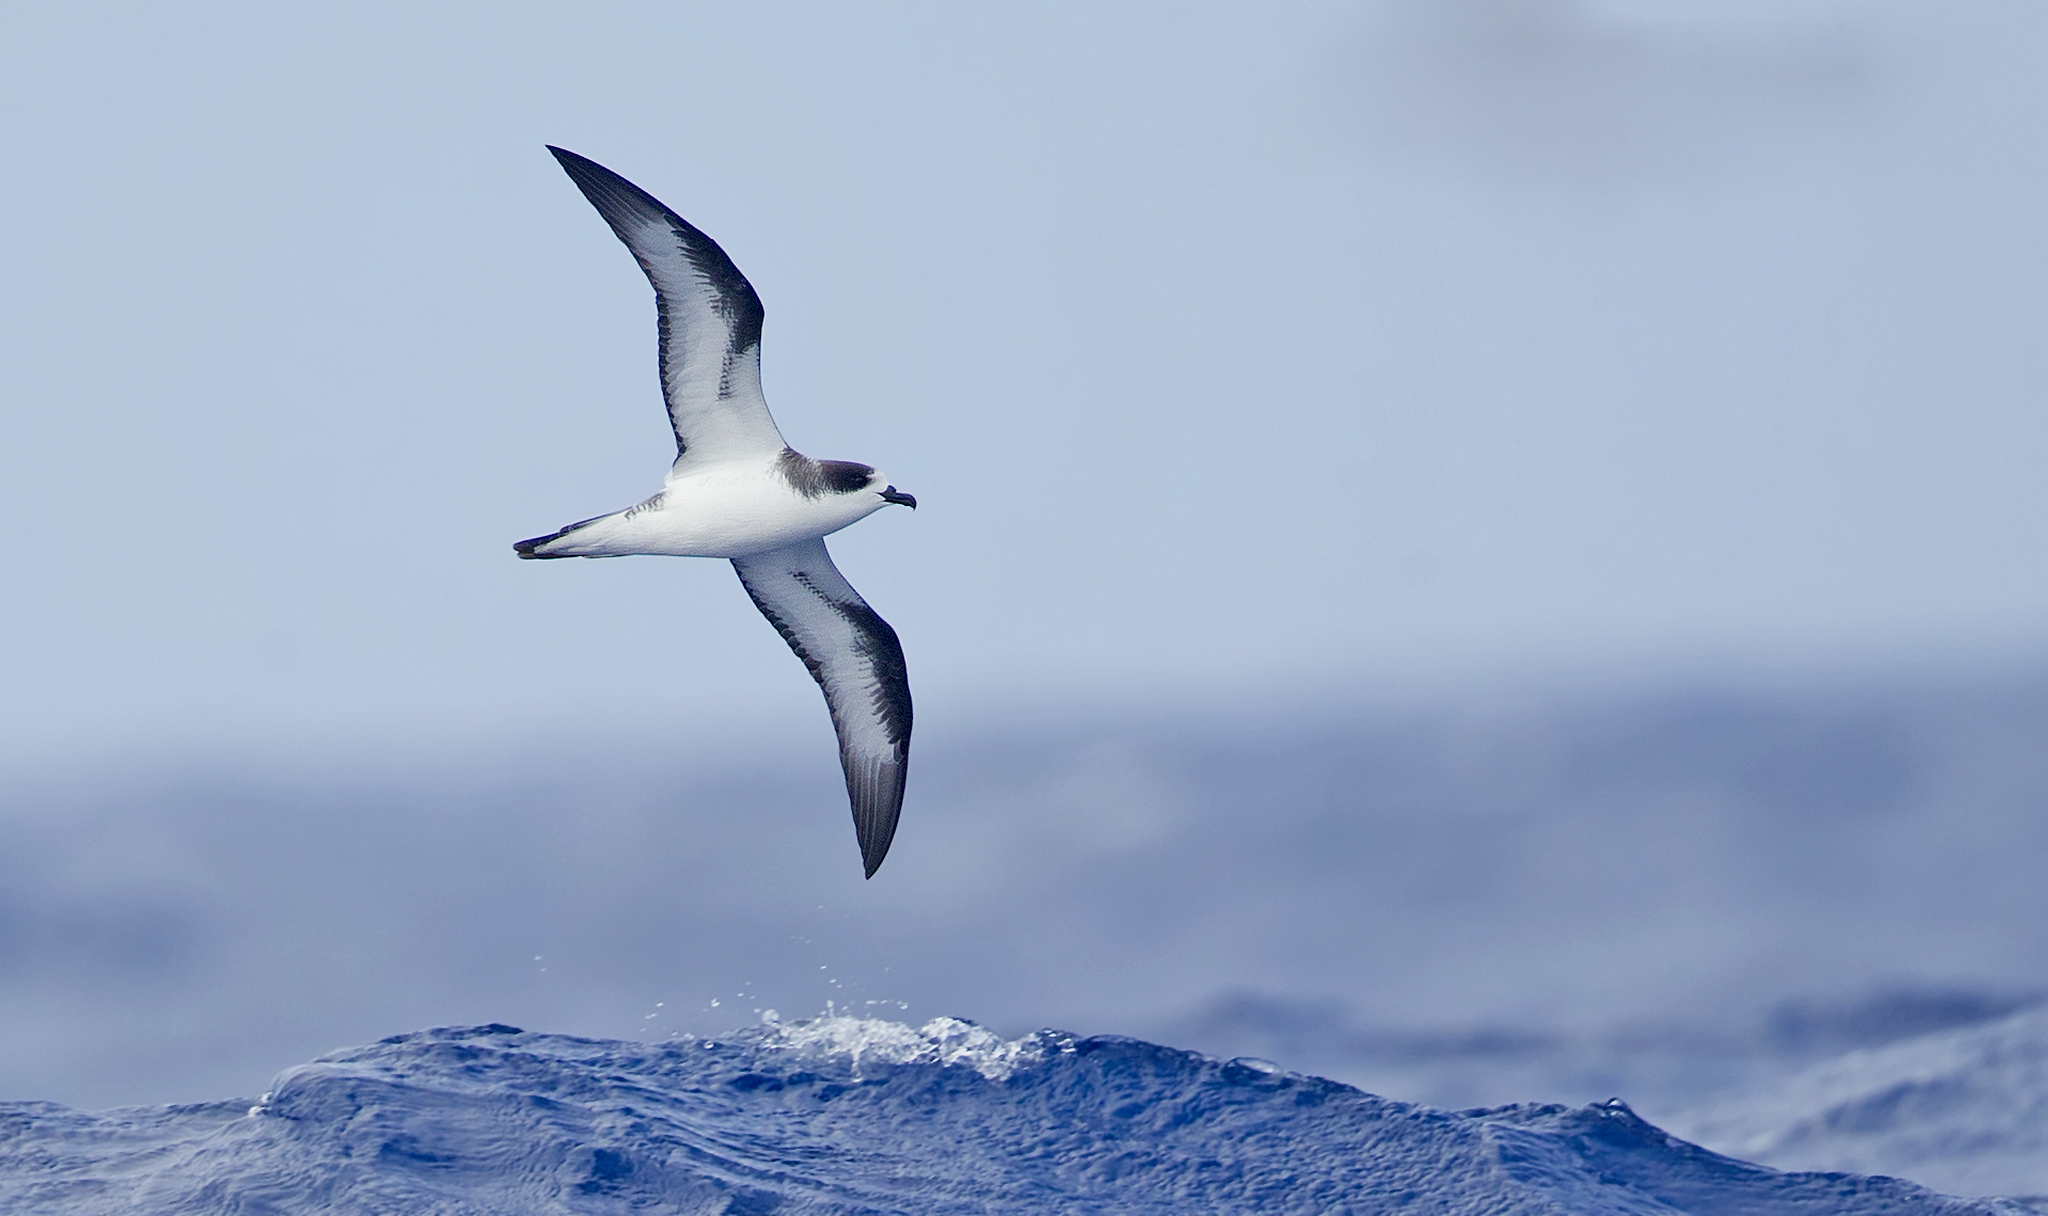 Hawaiian petrel flying over ocean